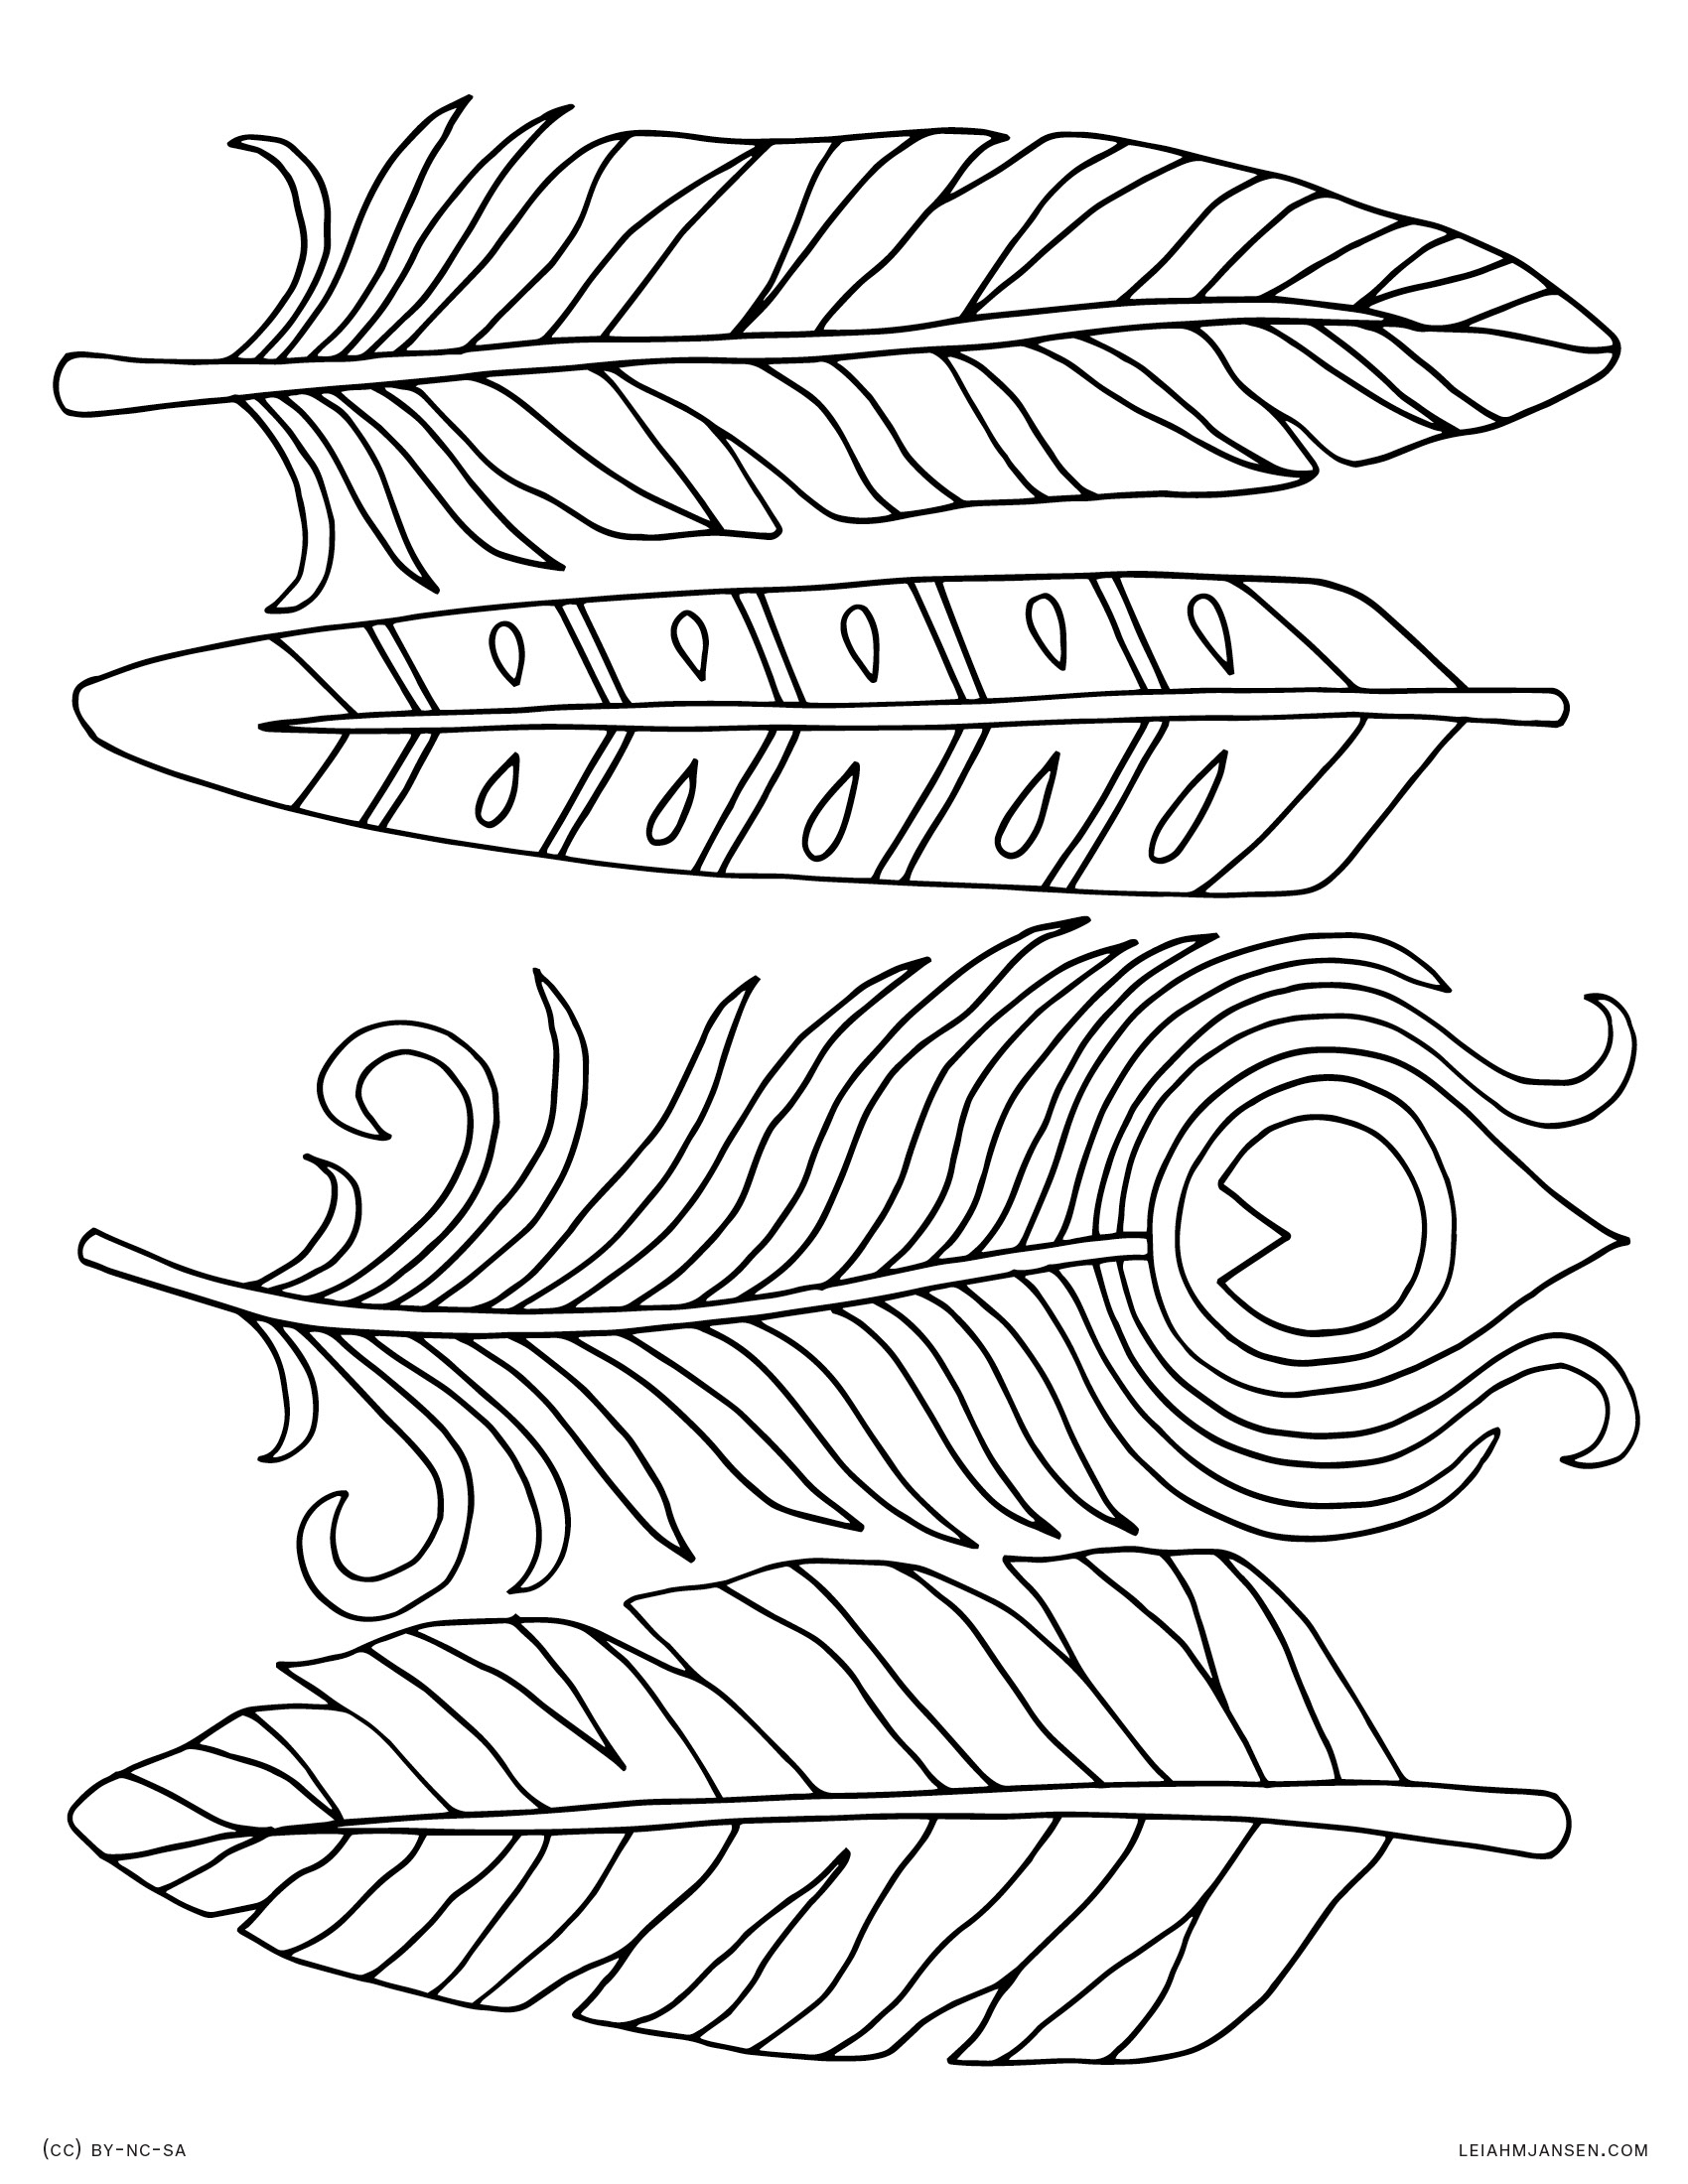 Indian Feathers Drawing at GetDrawings.com | Free for ...